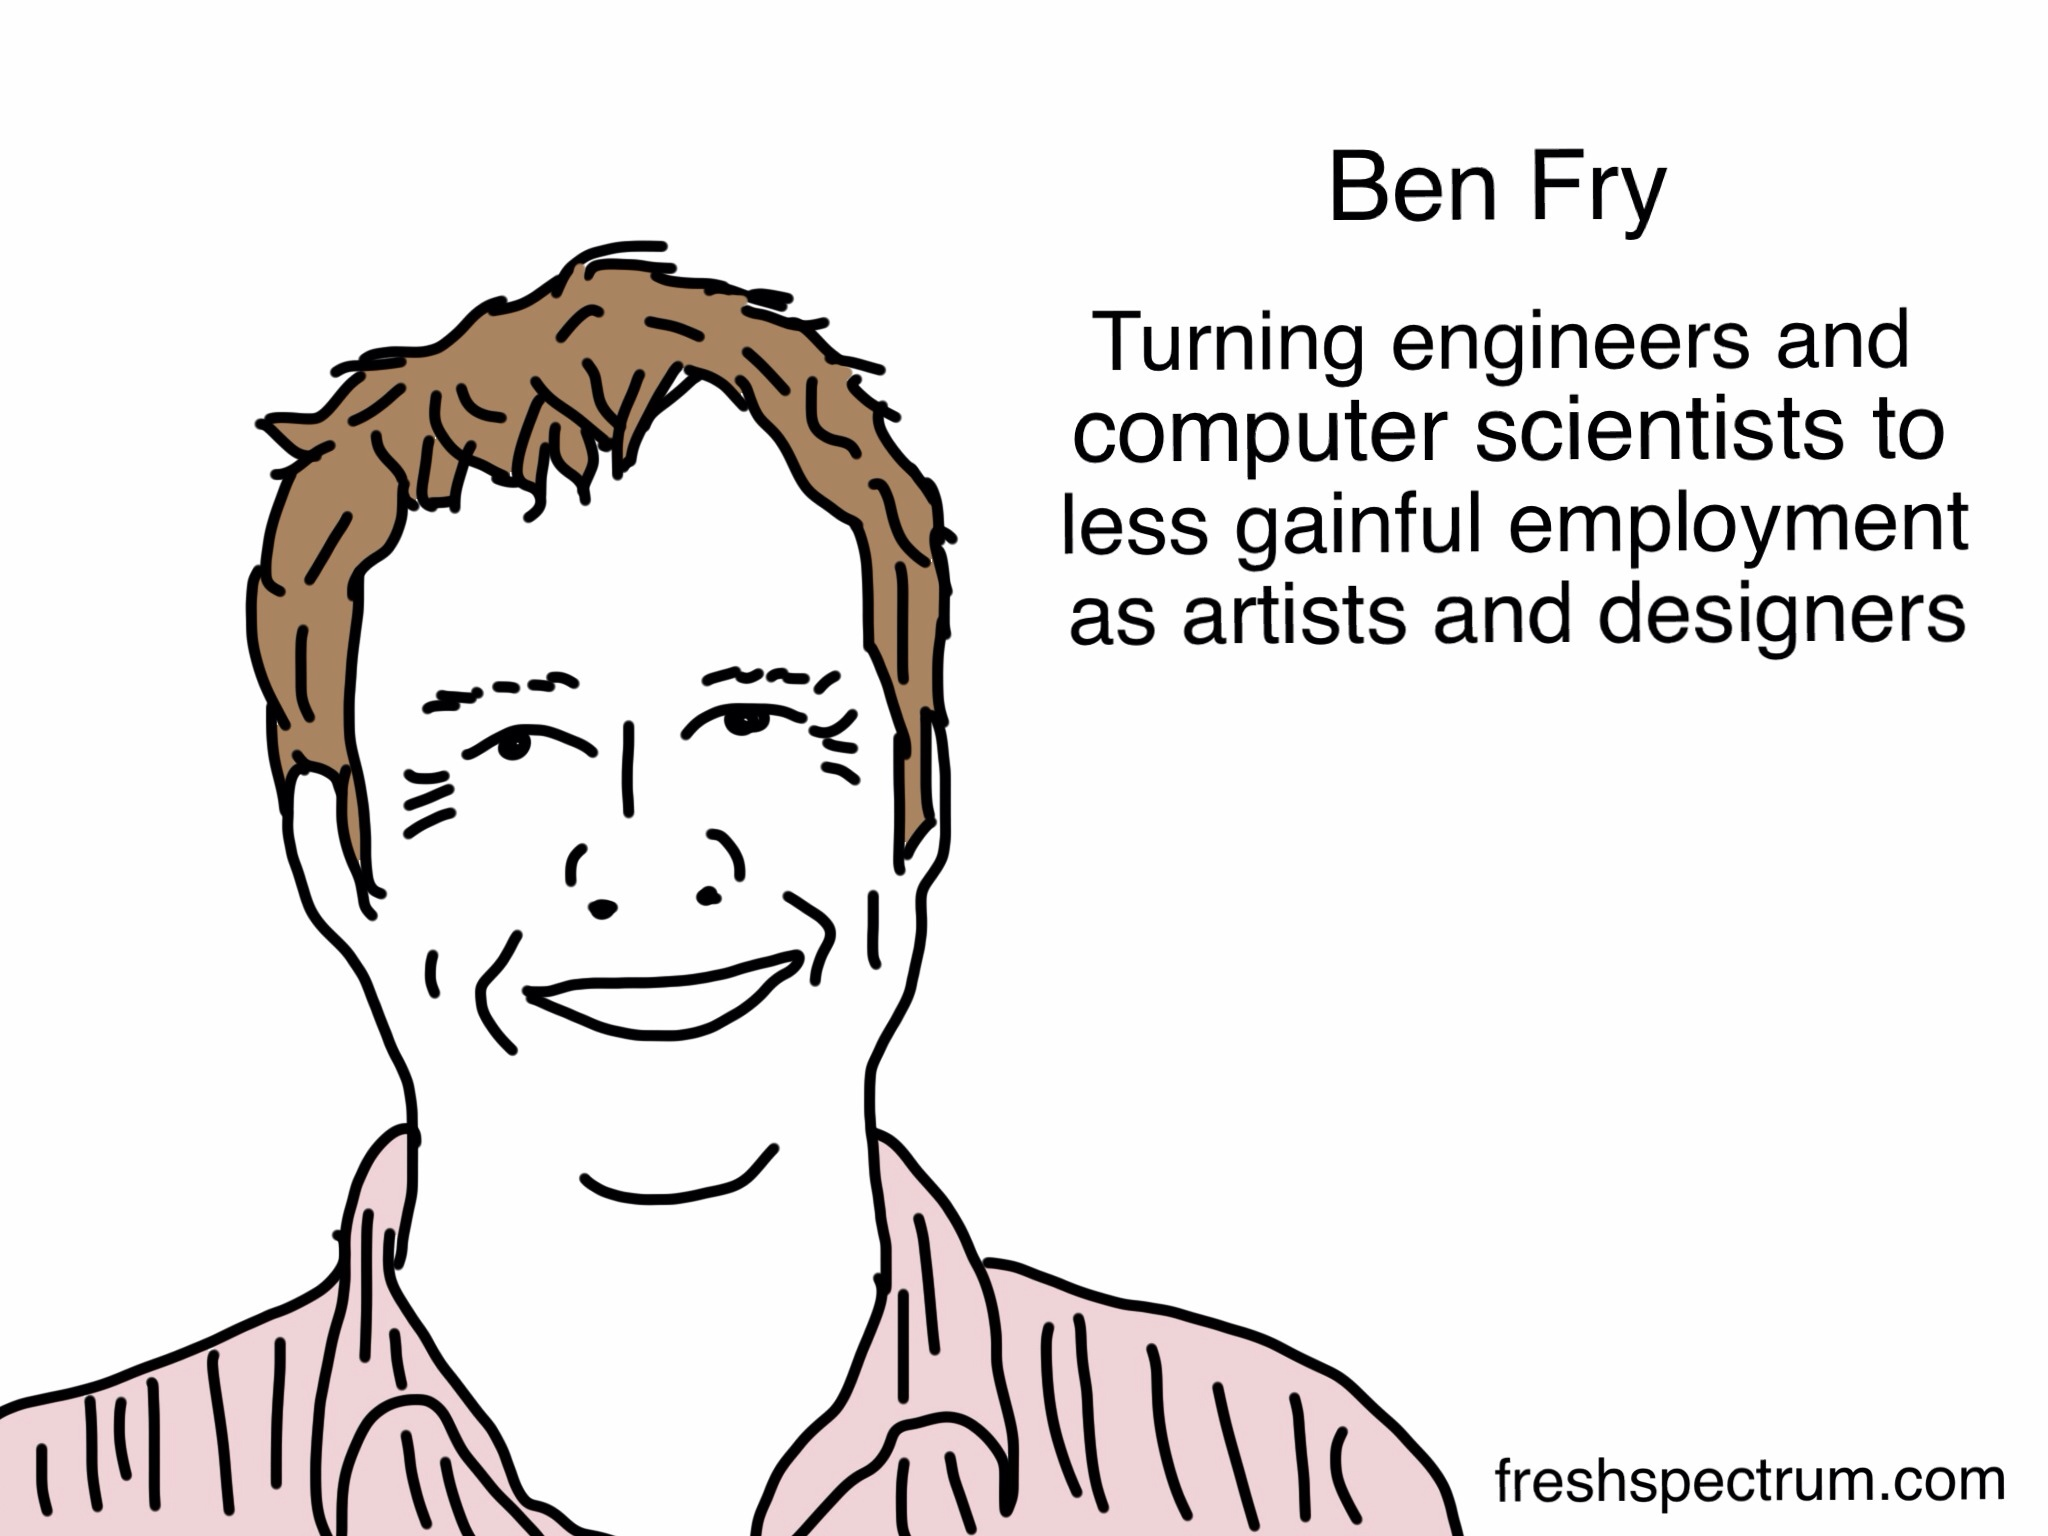 Ben Fry turning engineers and computer scientists to less gainful employment as artists and designers